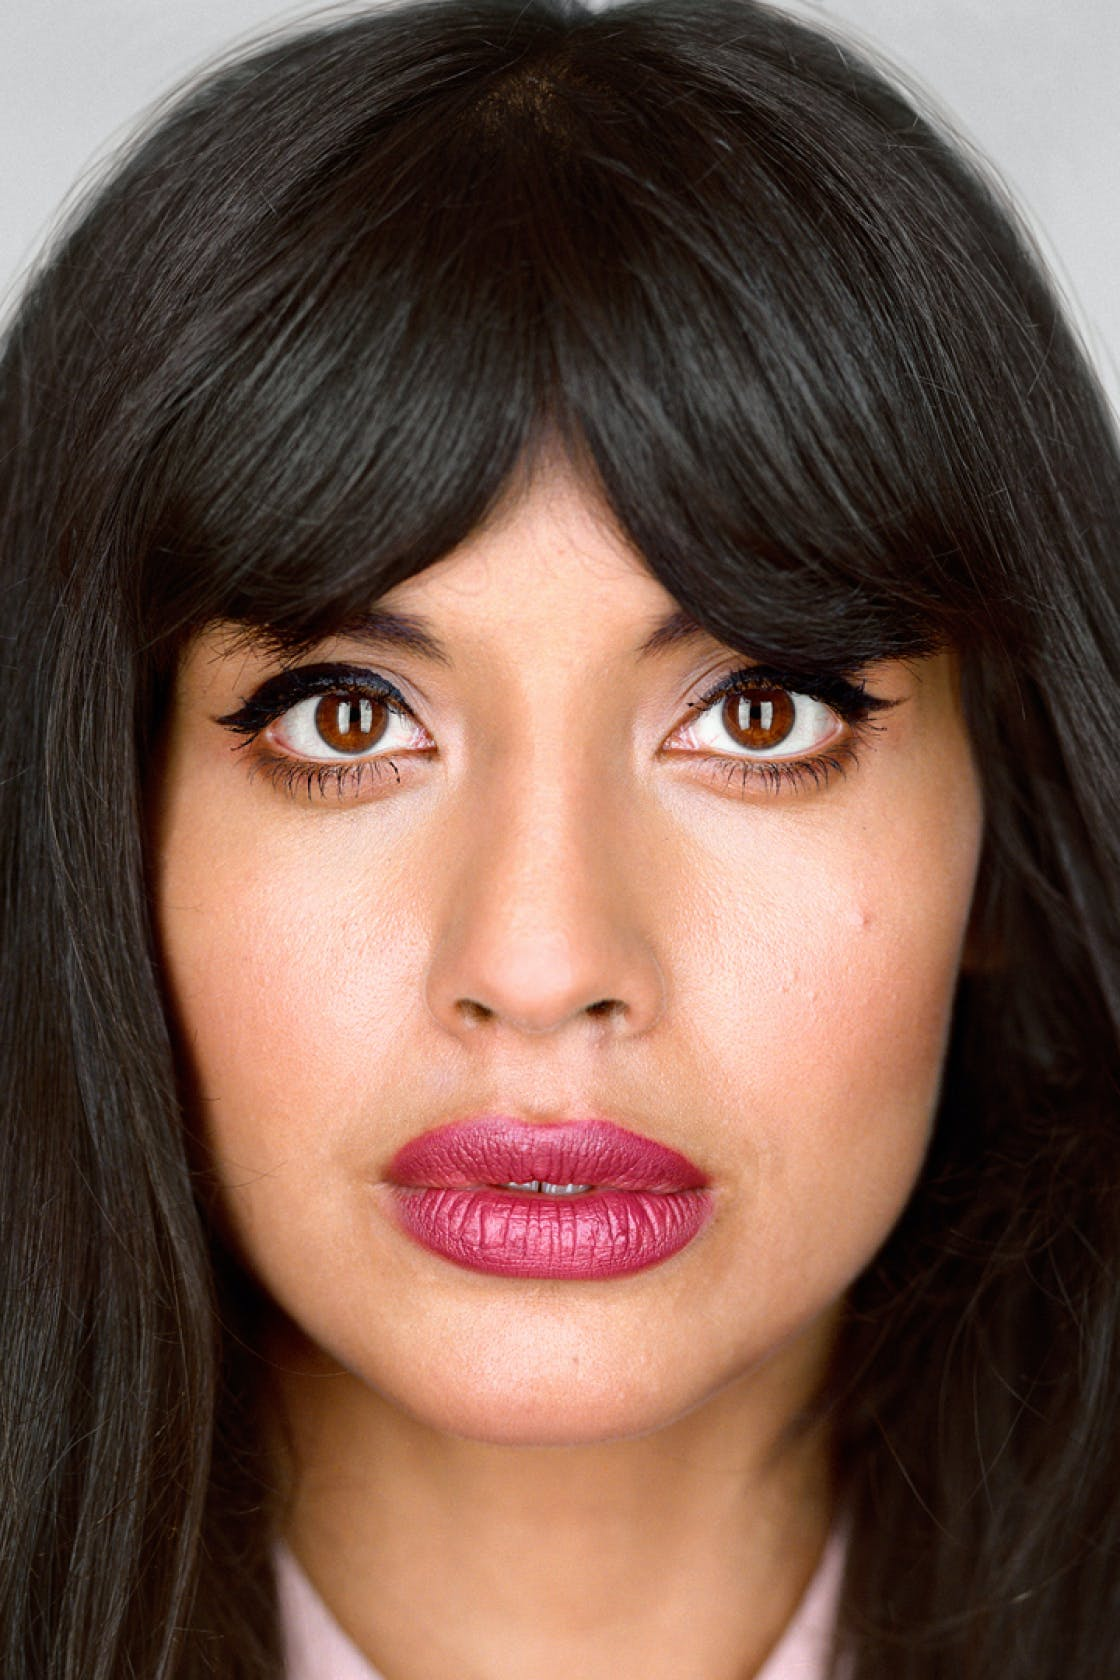 Jameela Jamil gets real about periods, depression and Kim ...